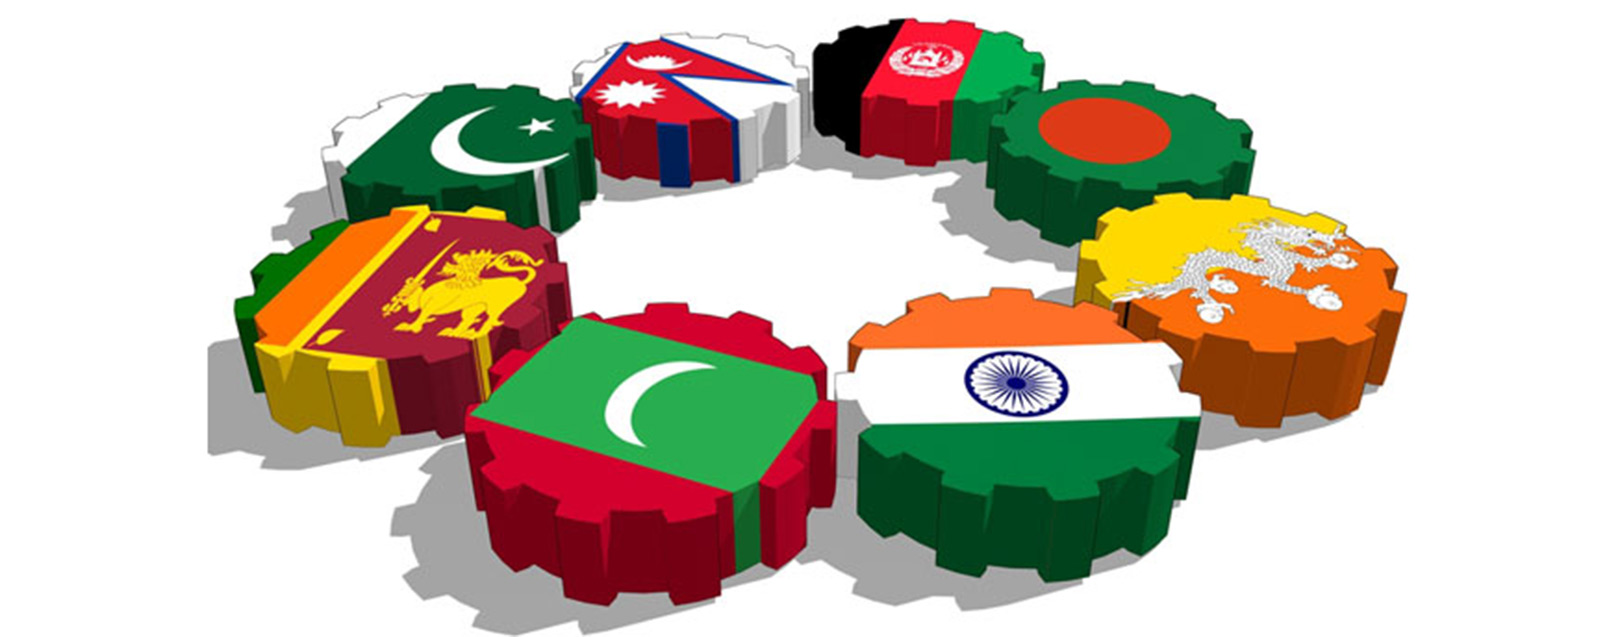 india s trade with saarc nations India's trade with saarc region and individual saarc countries in absolute terms and in relation with india's total trade i nternational j ournal of m ultidisciplinary a dvanced r esearch t rends.